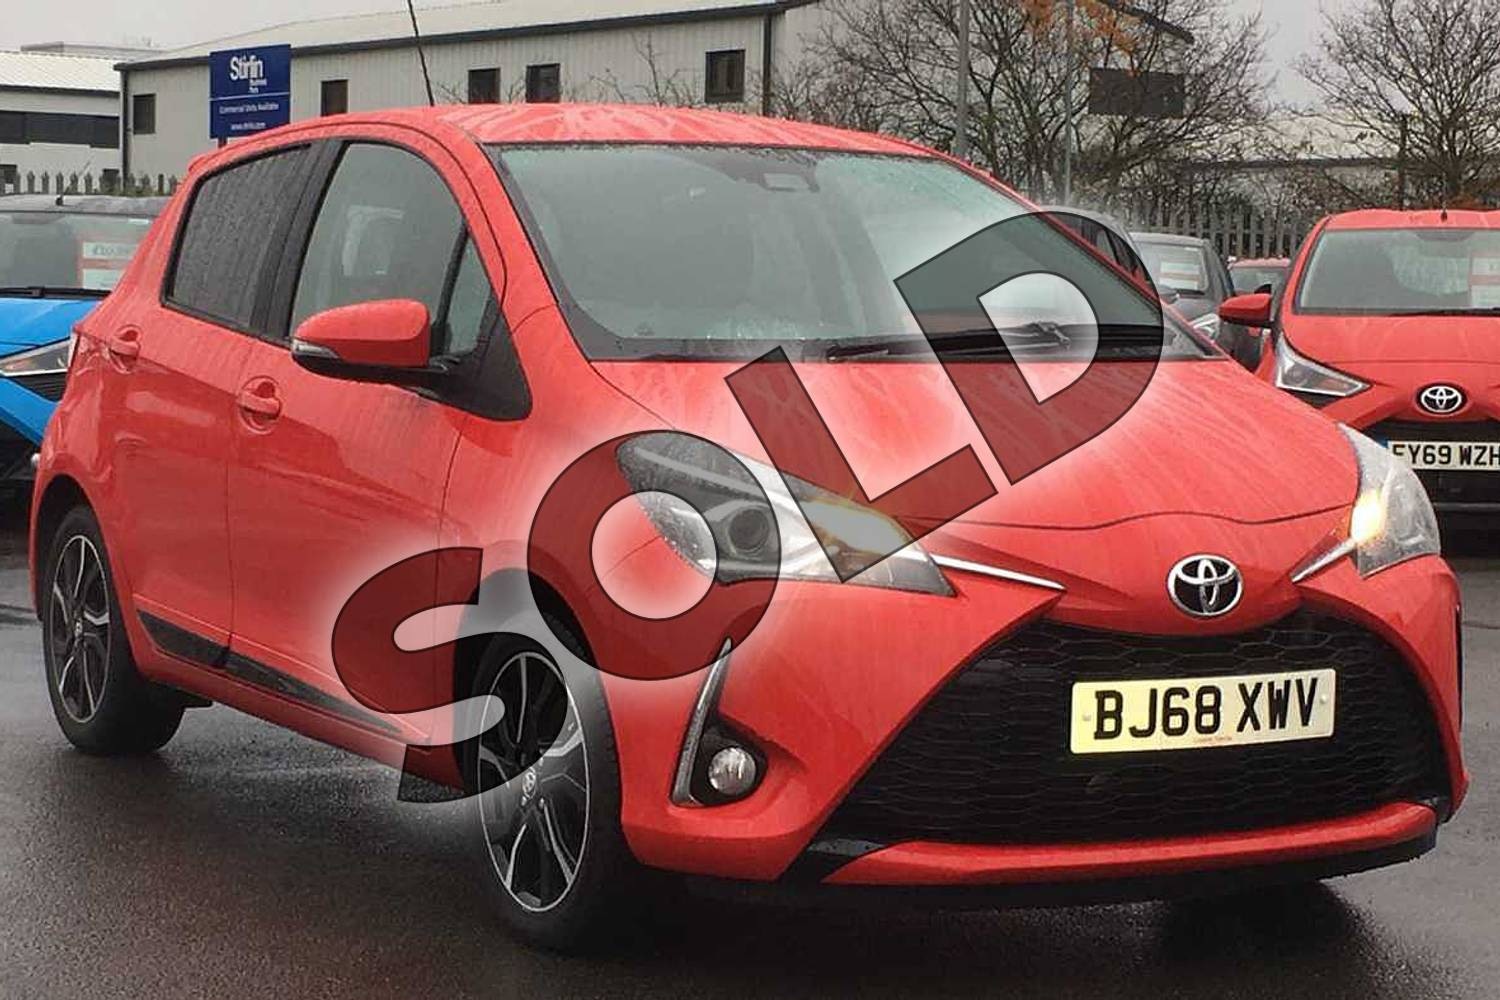 2018 Toyota Yaris Hatchback 1.5 VVT-i Design 5dr in Chilli Red at Listers Toyota Coventry